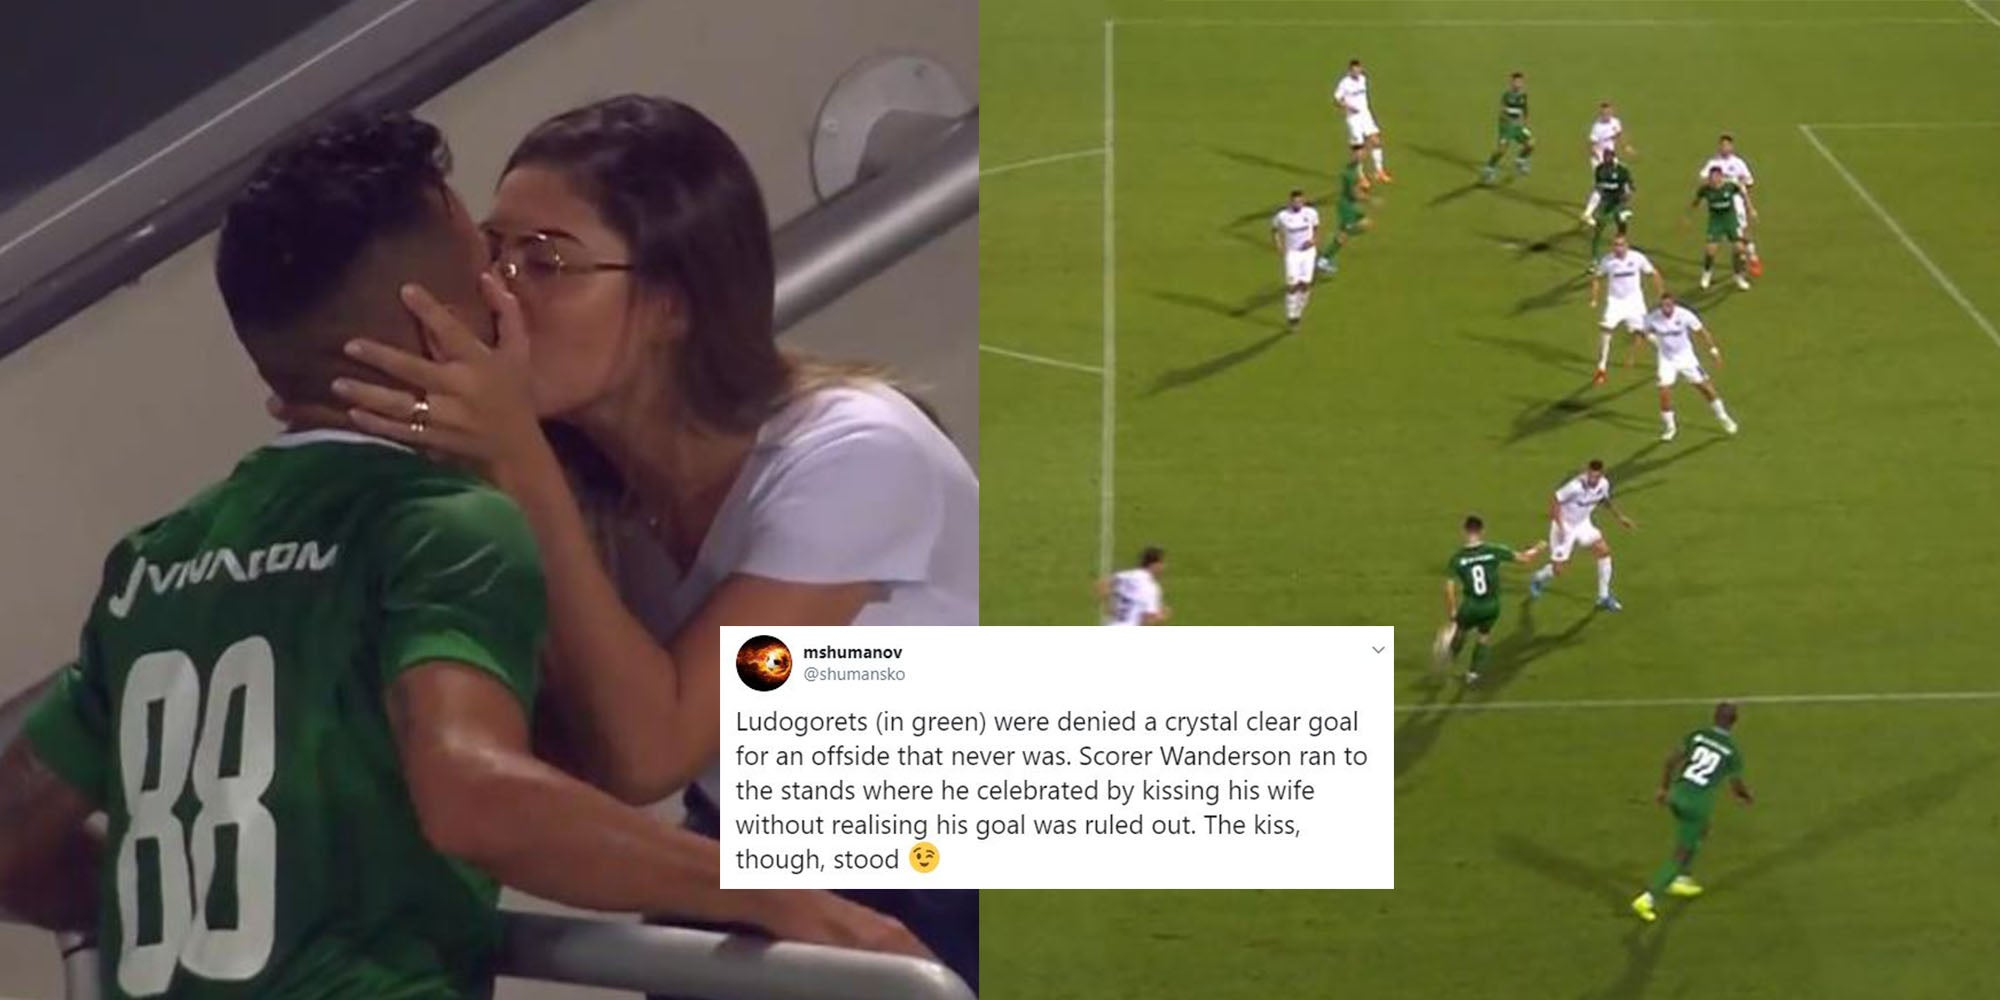 Ludogorets footballer Wanderson celebrates goal by kissing